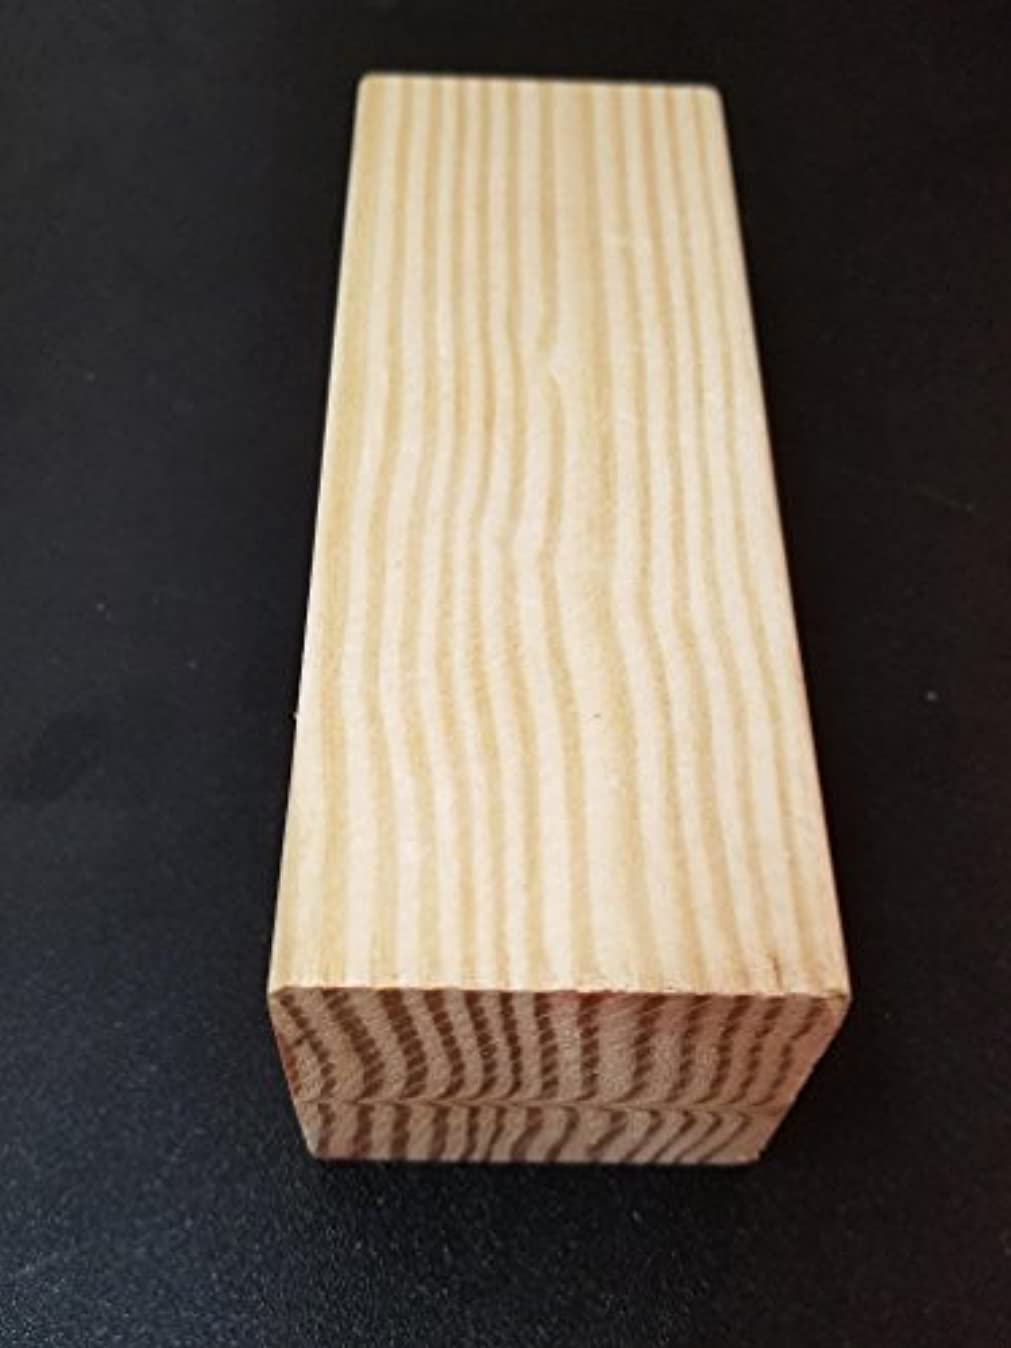 A2Zsale 4 Kiln Dried Yellow Pine Turning Blanks 5.75